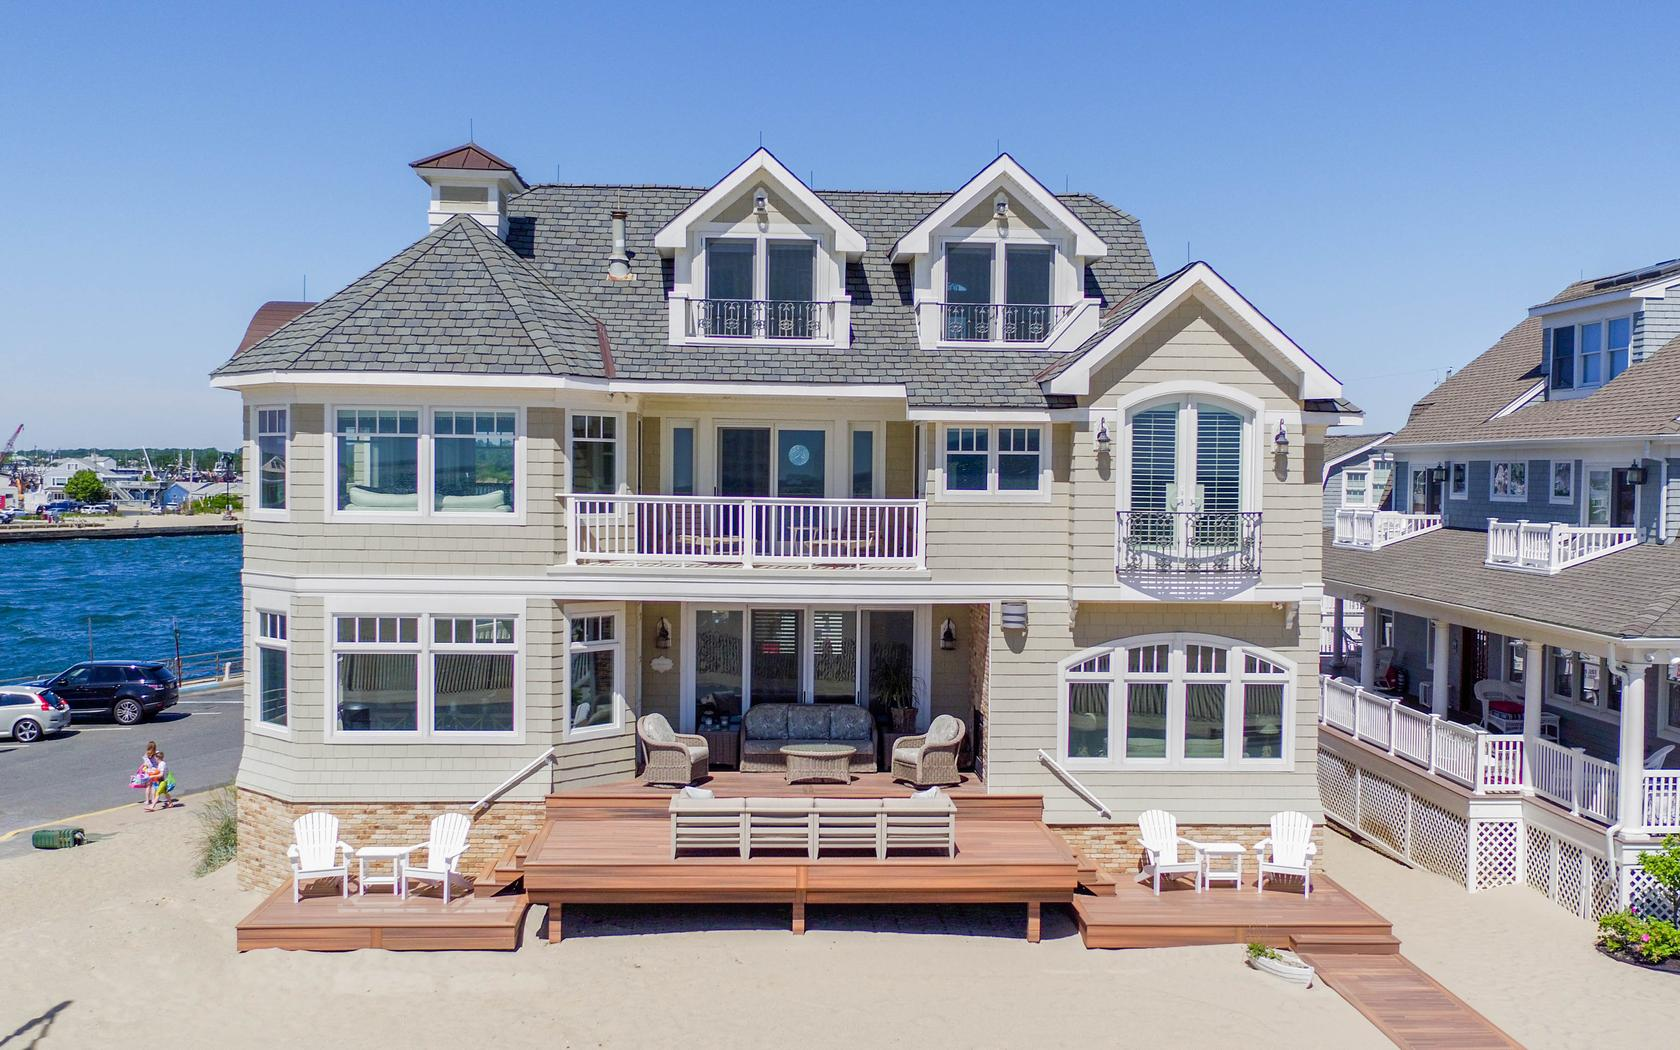 Villa per Vendita alle ore Perfection Knows No Boundaries! 431 Beach Front Manasquan, New Jersey, 08736 Stati Uniti